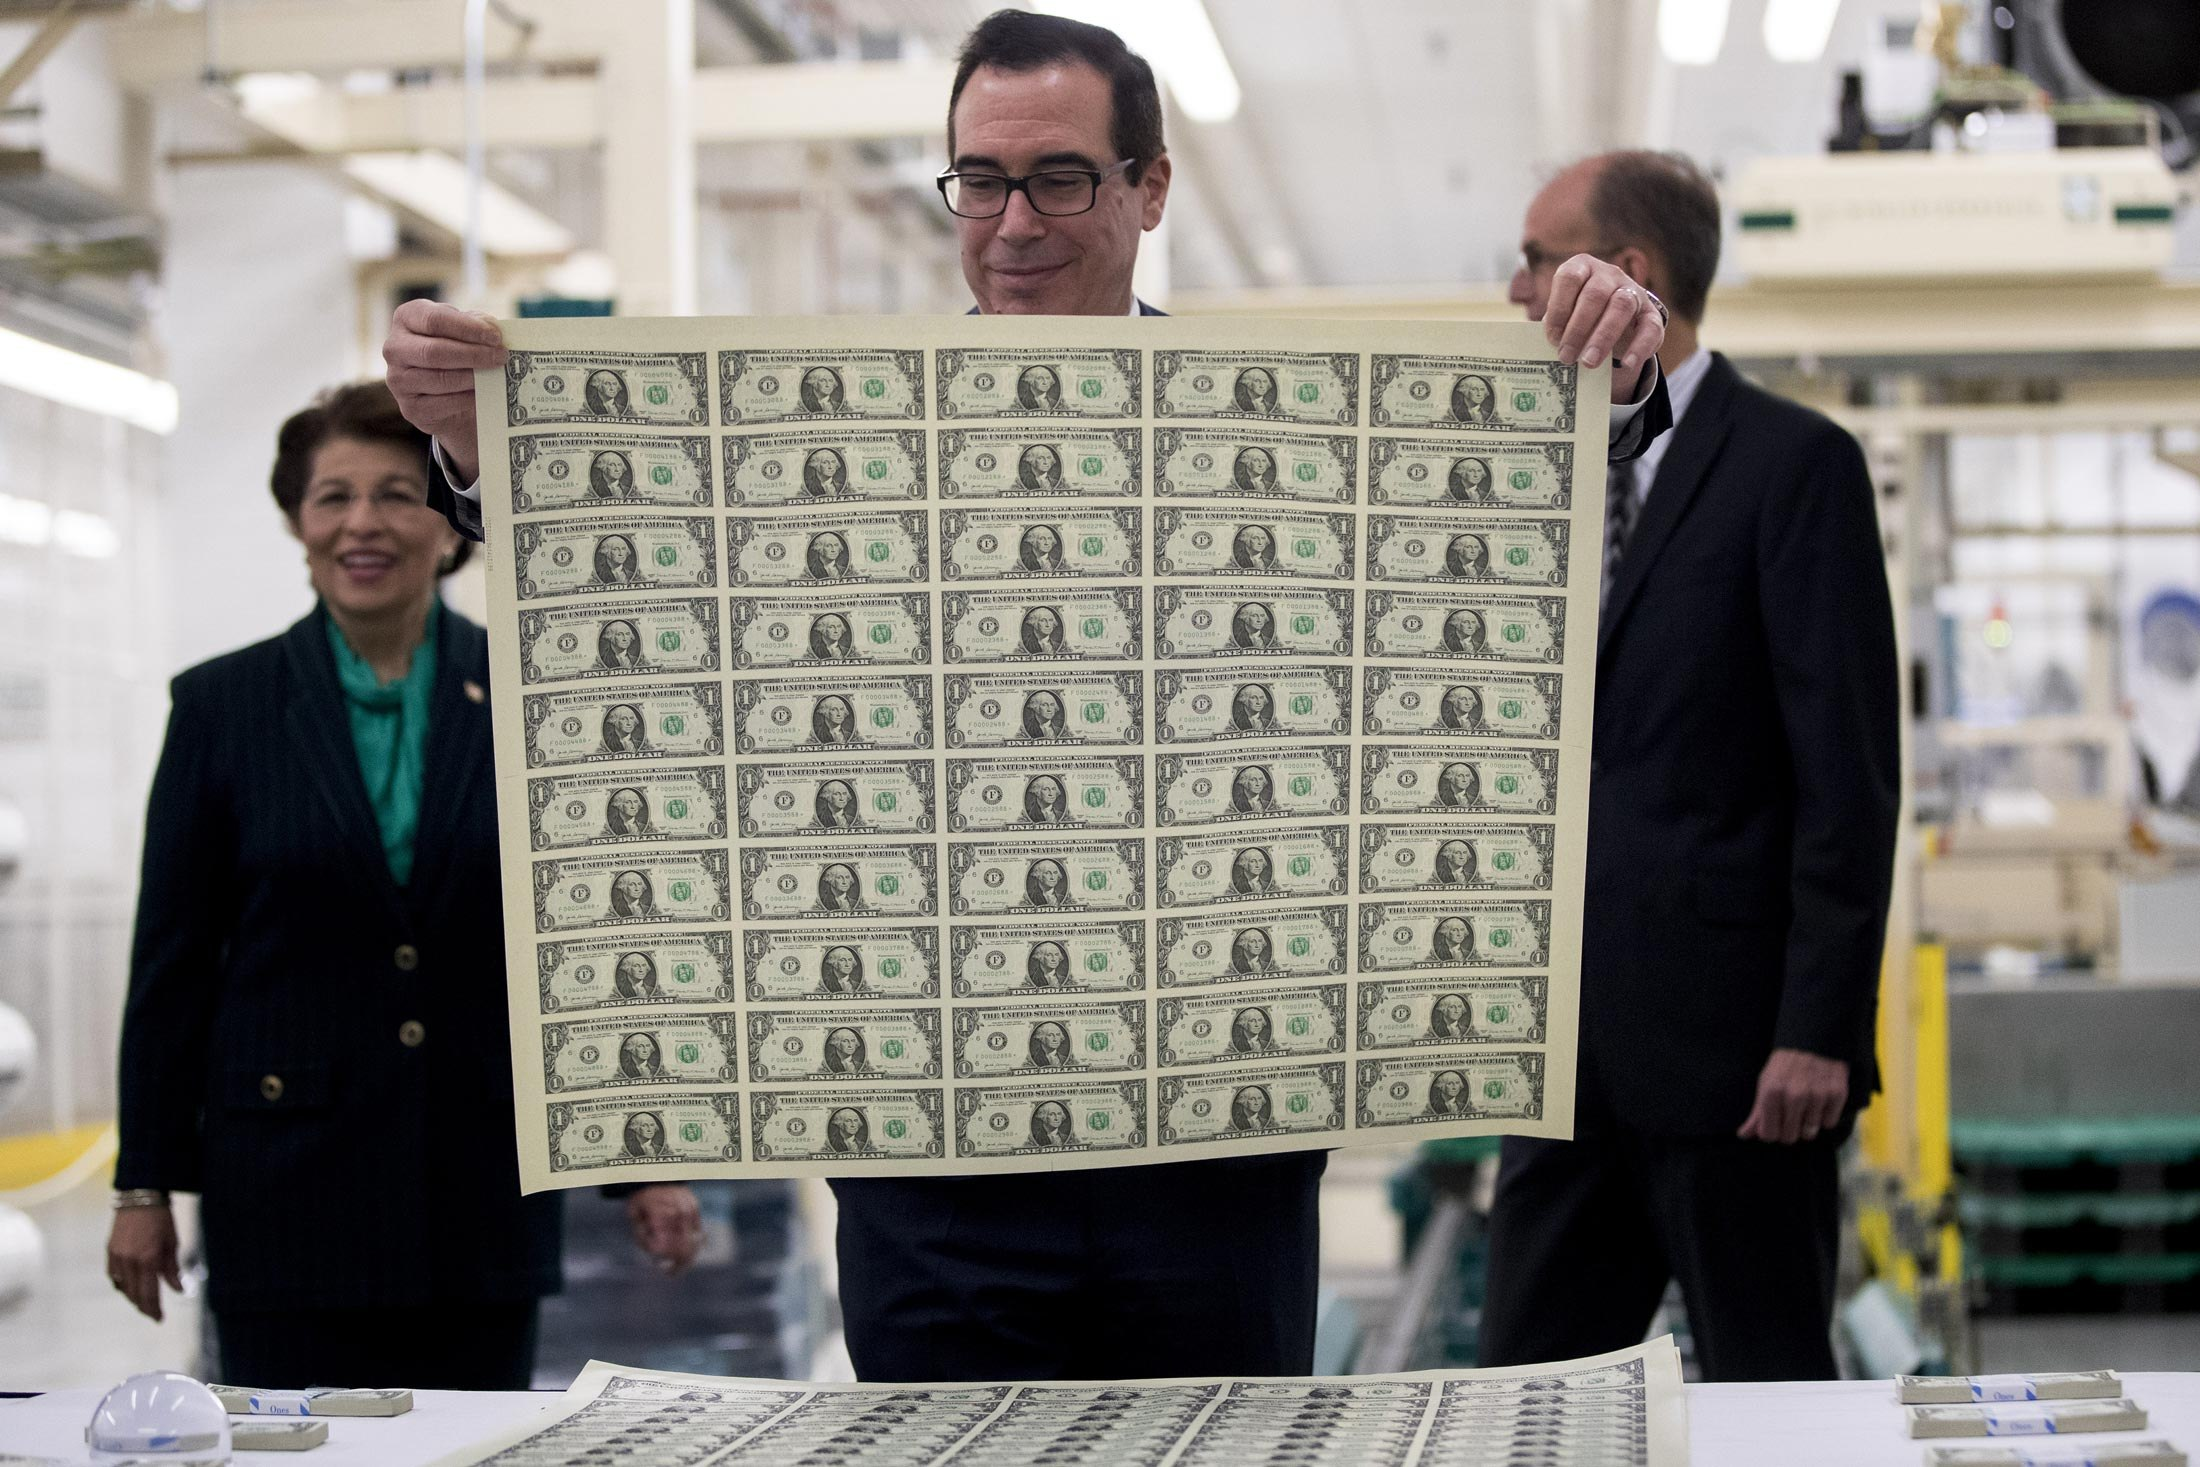 https://assets.sourcemedia.com/52/48/2d1a44734164b3f6925b003d48da/mnuchin-dollar-bills.jpg